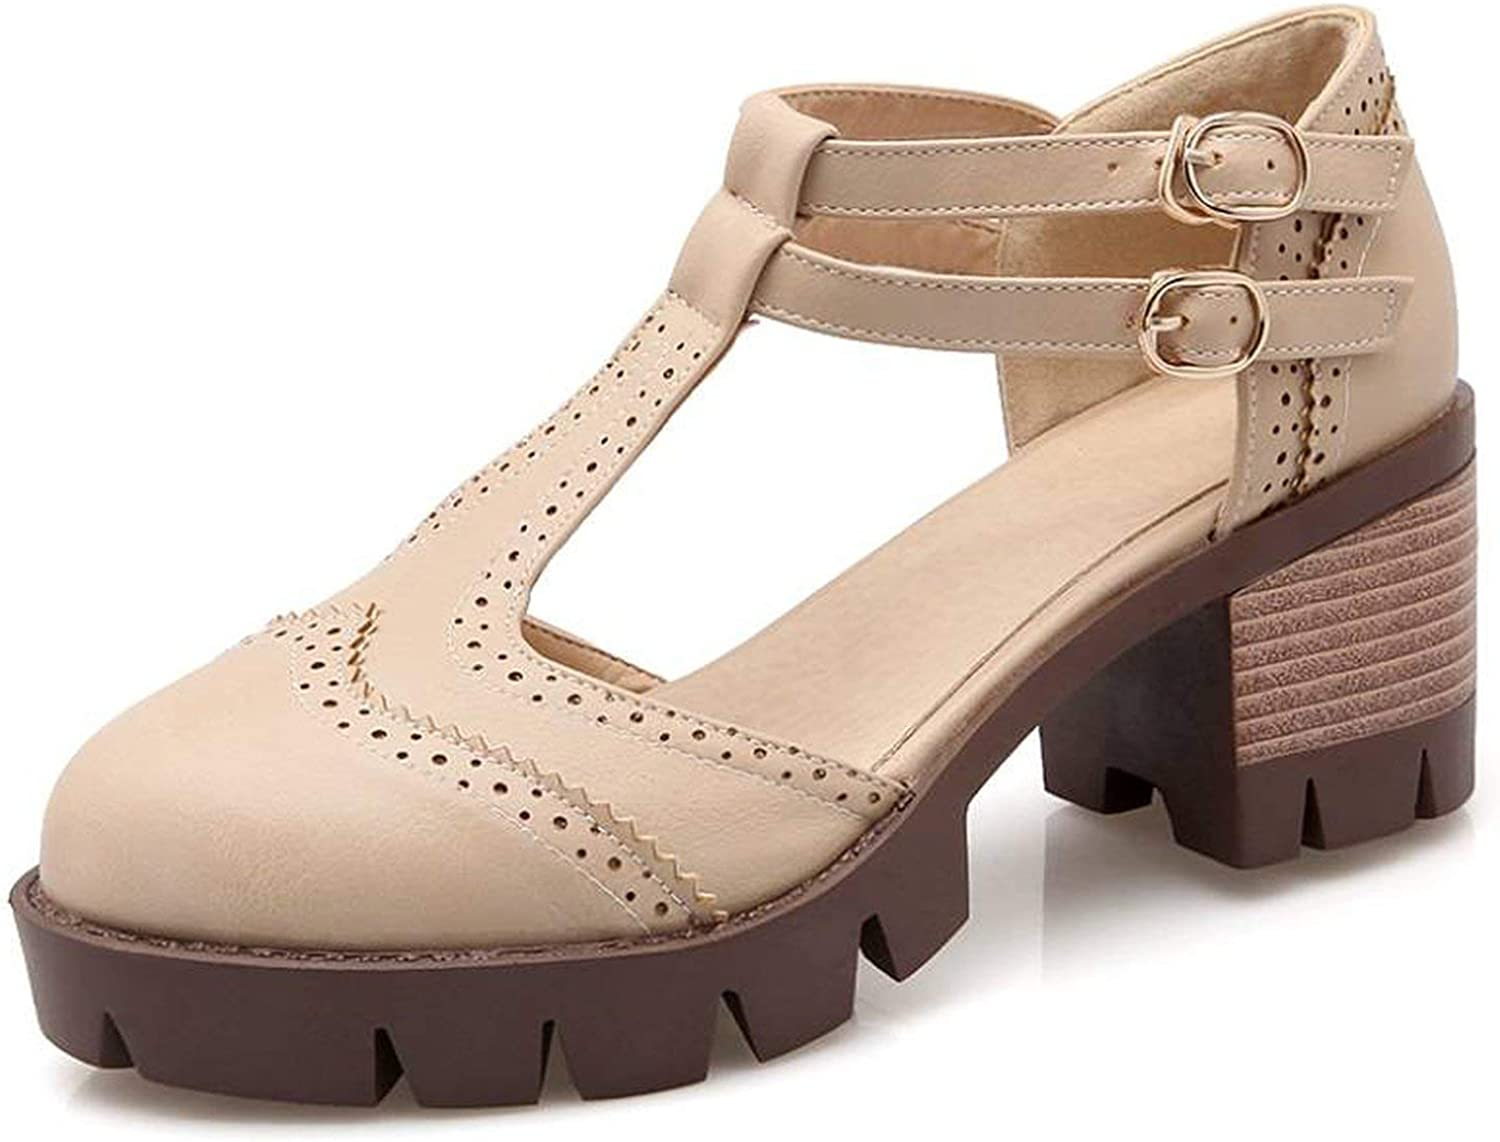 Betterluse Shallow Flats Rome T Straps Chunky Heels Summer Woman Outdoor Casual Dress Girl Gladiator Sandals